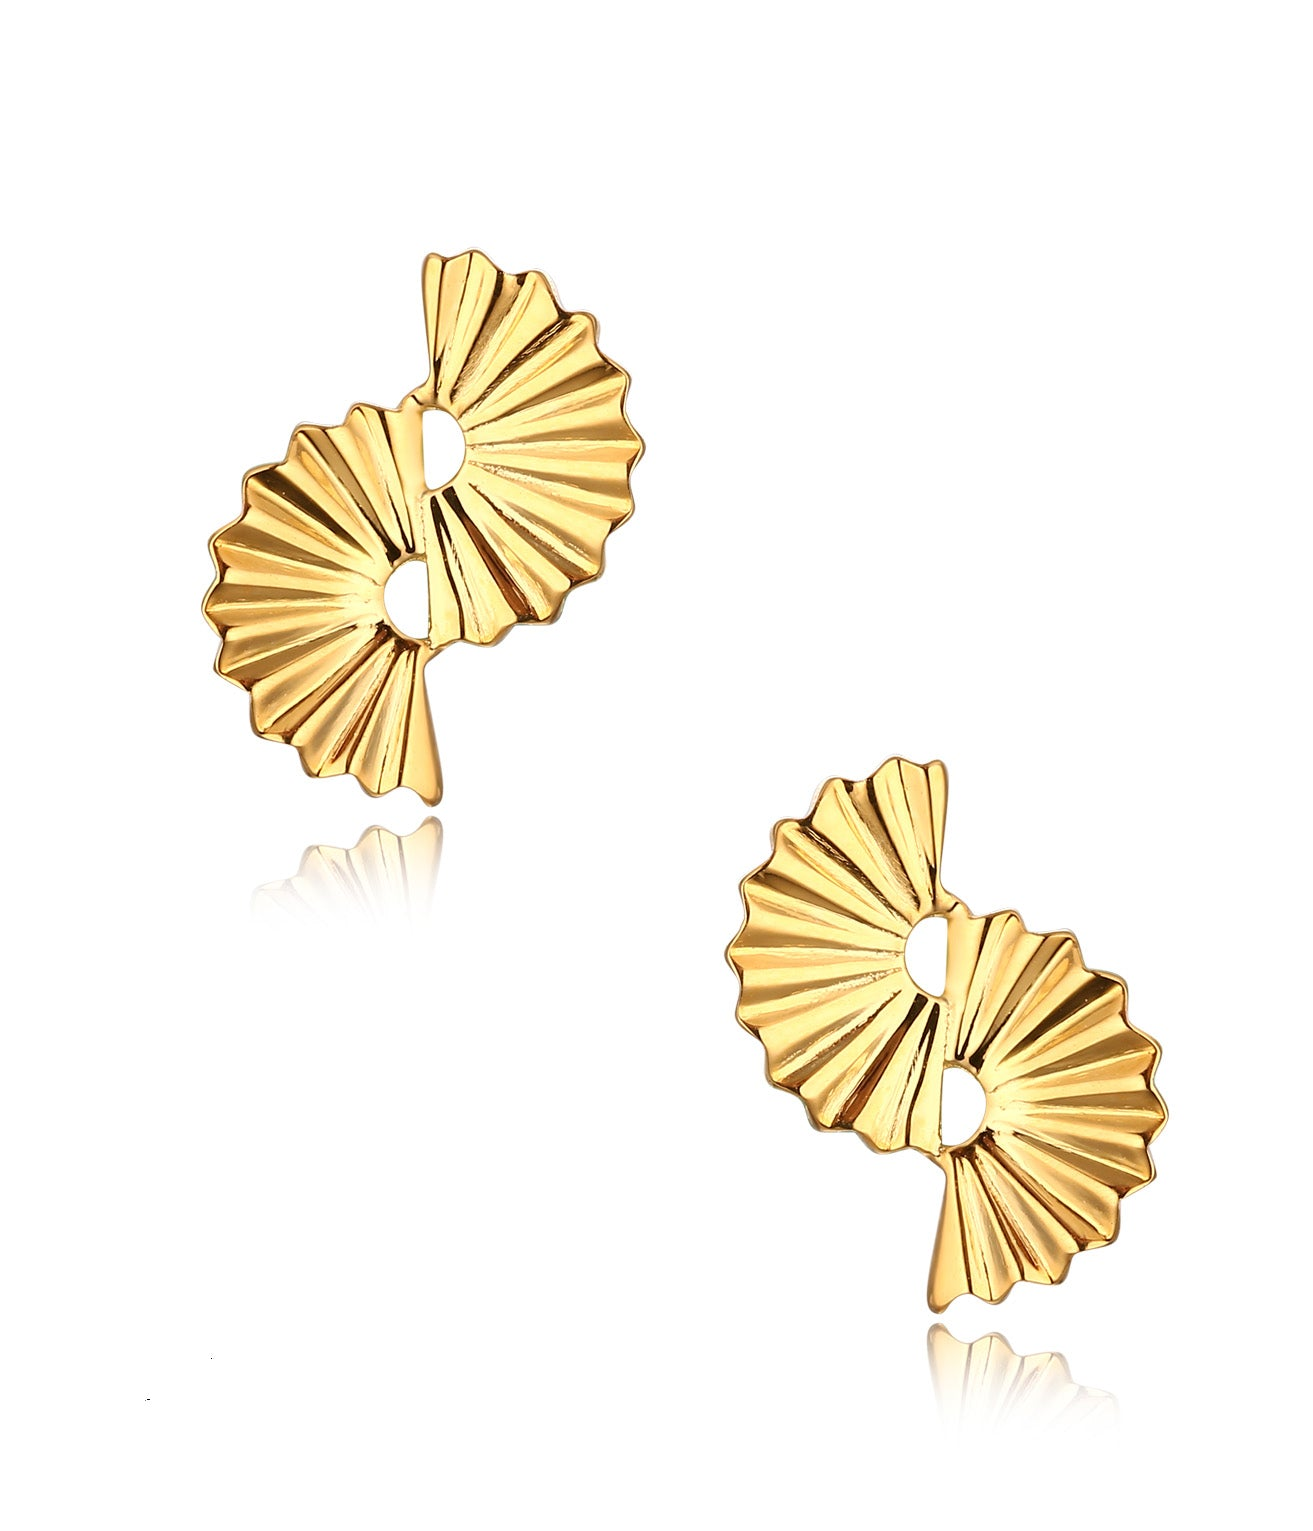 Antonella 18K Yellow Plating, Elegant Fan Charm Earrings, Gifts for Mom, Best Friends, Gold Tone - Quan Jewelry